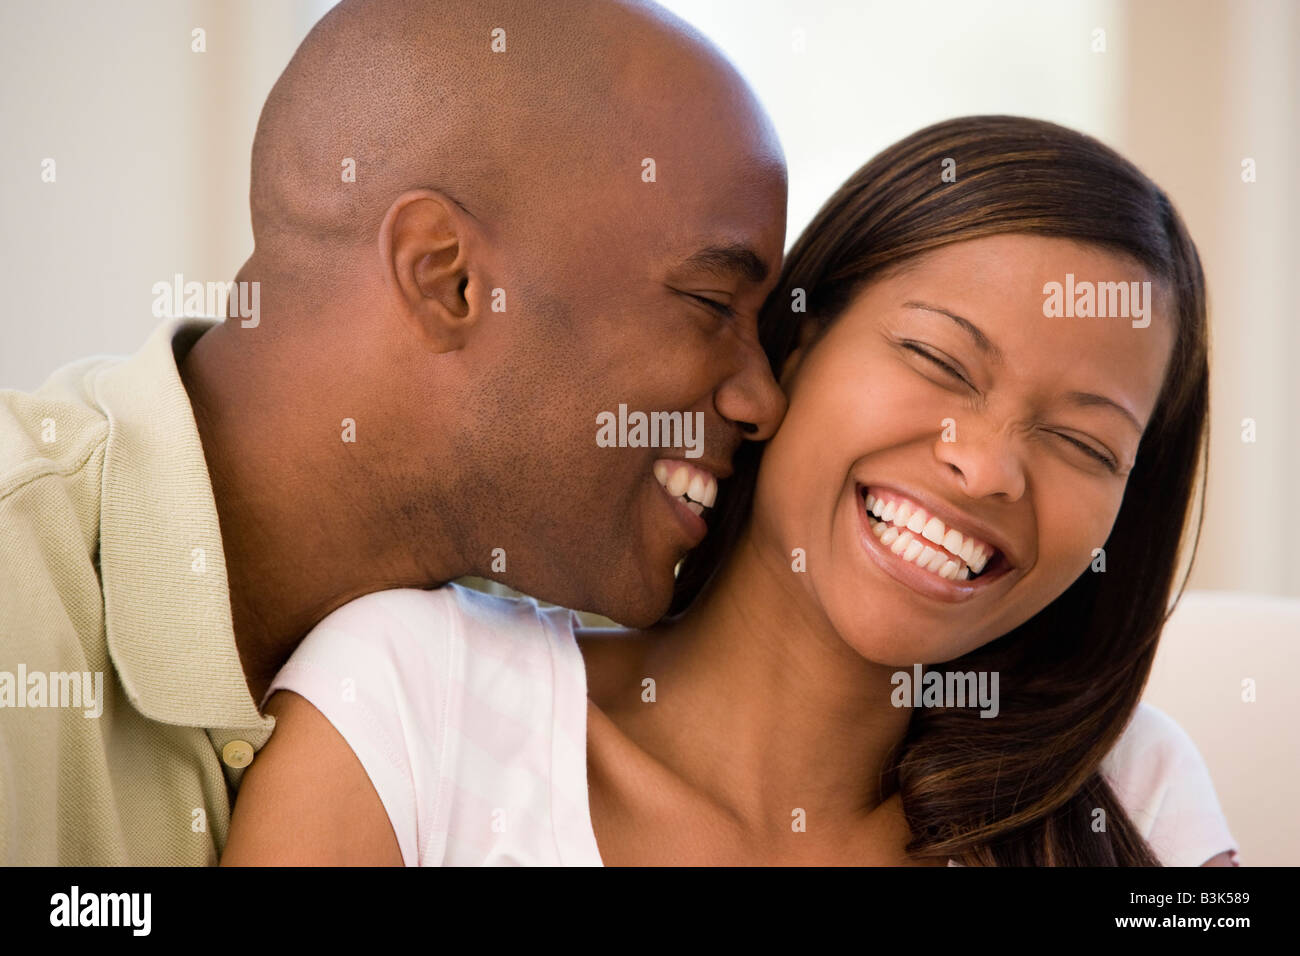 Couple in living room smiling - Stock Image